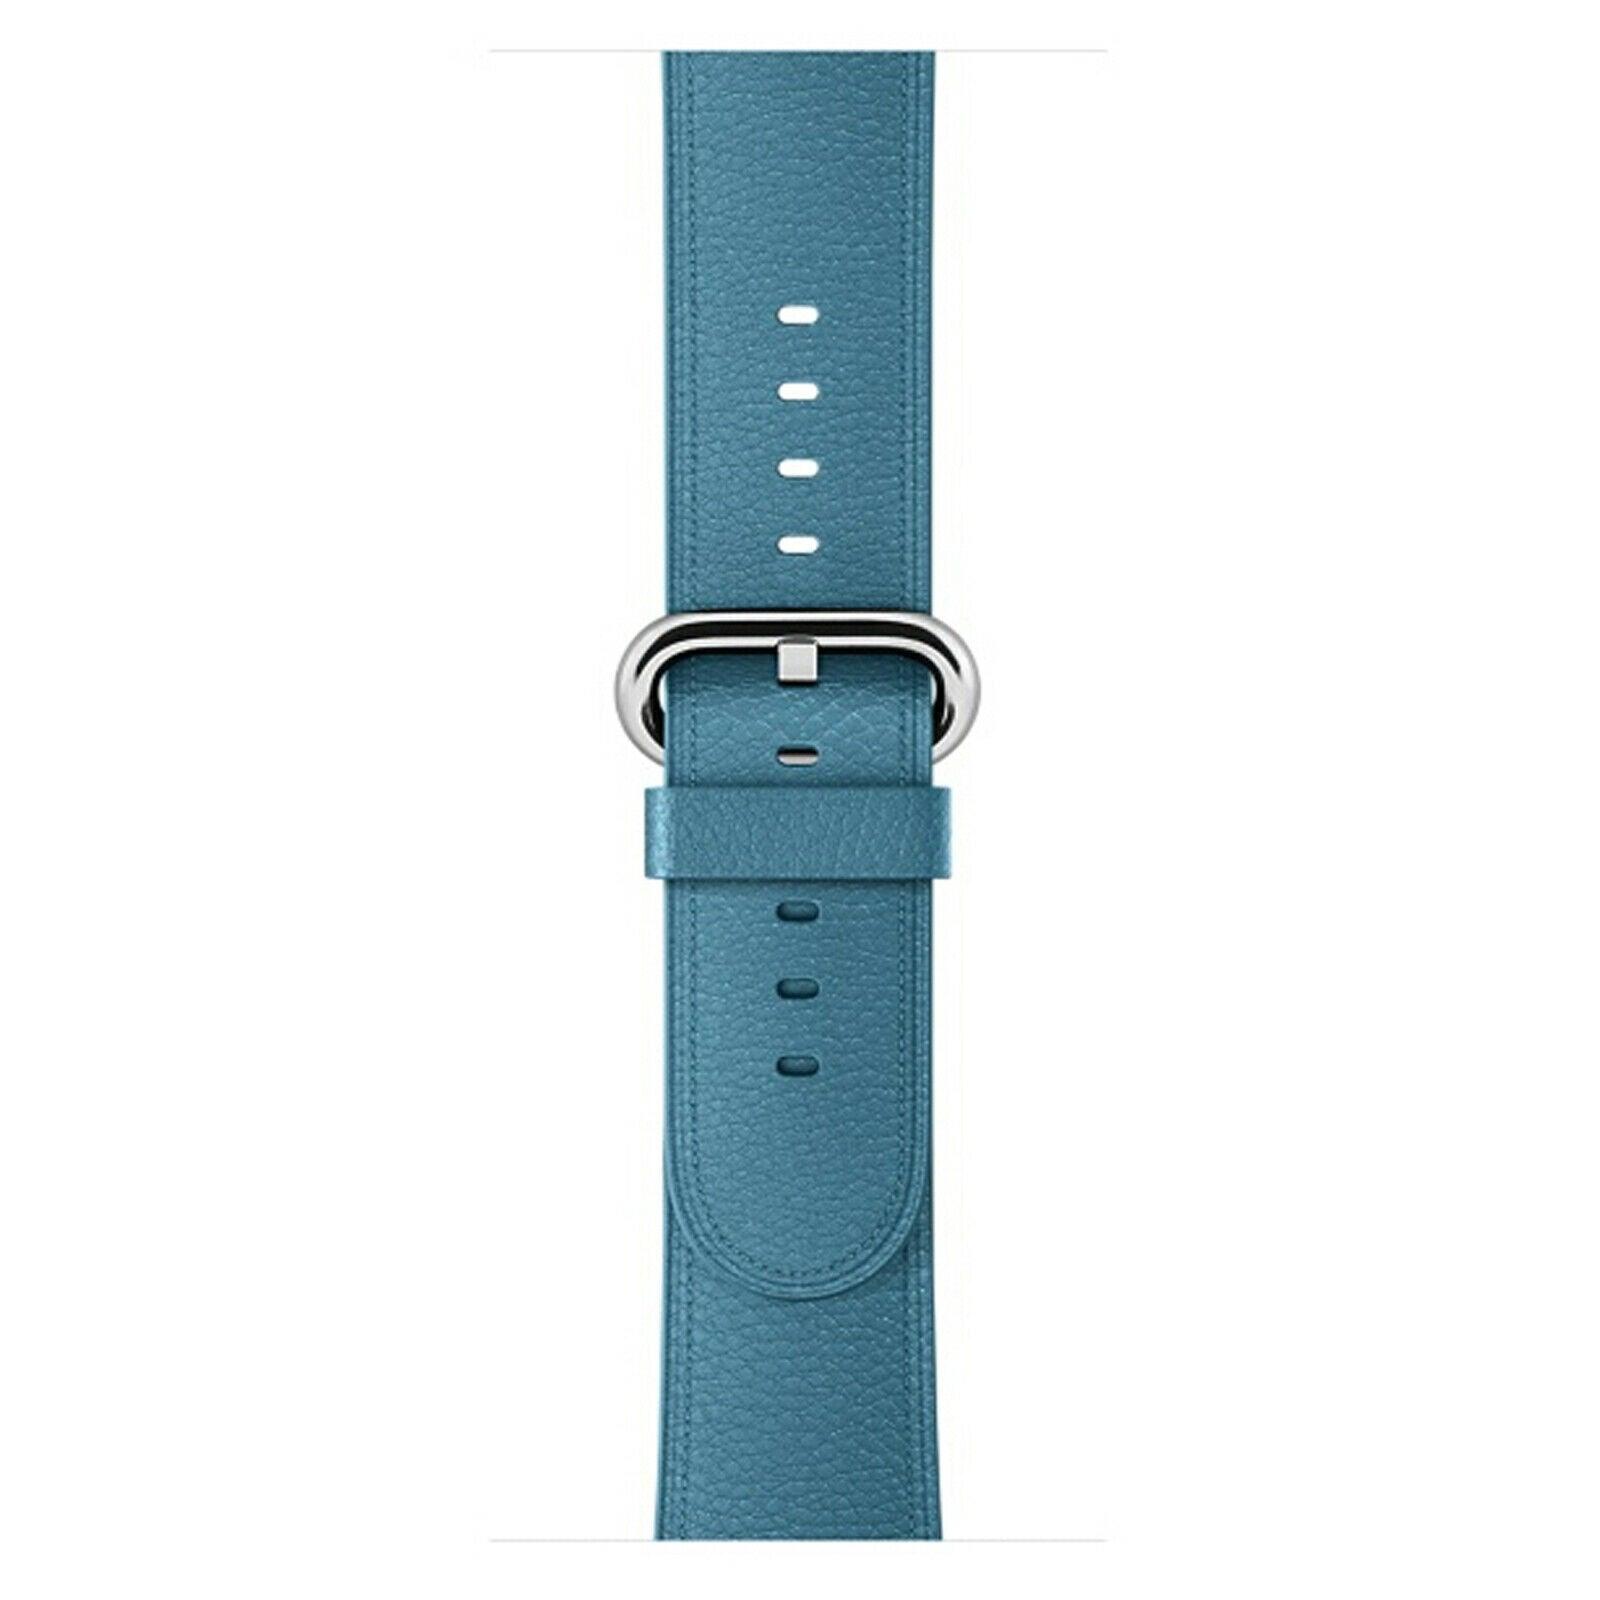 Apple Watch Genuine High-Quality Leather Strap